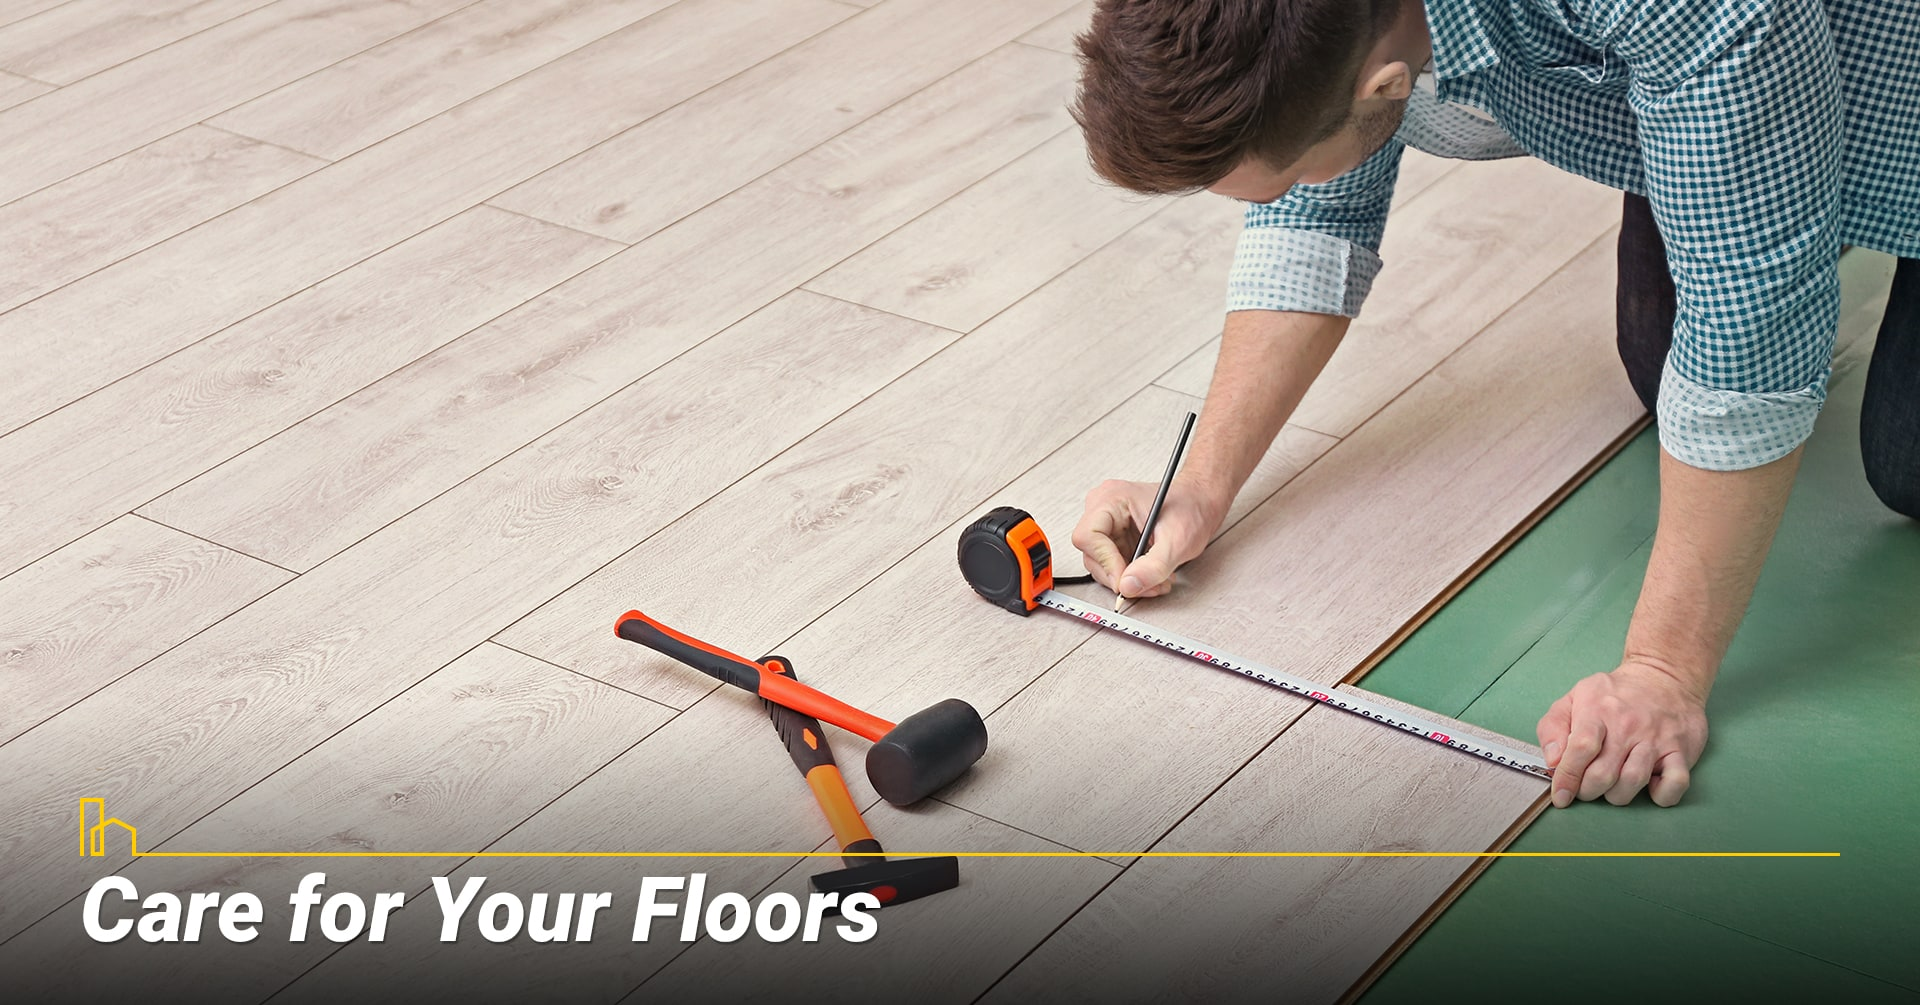 Care for Your Floors, maintain your floors